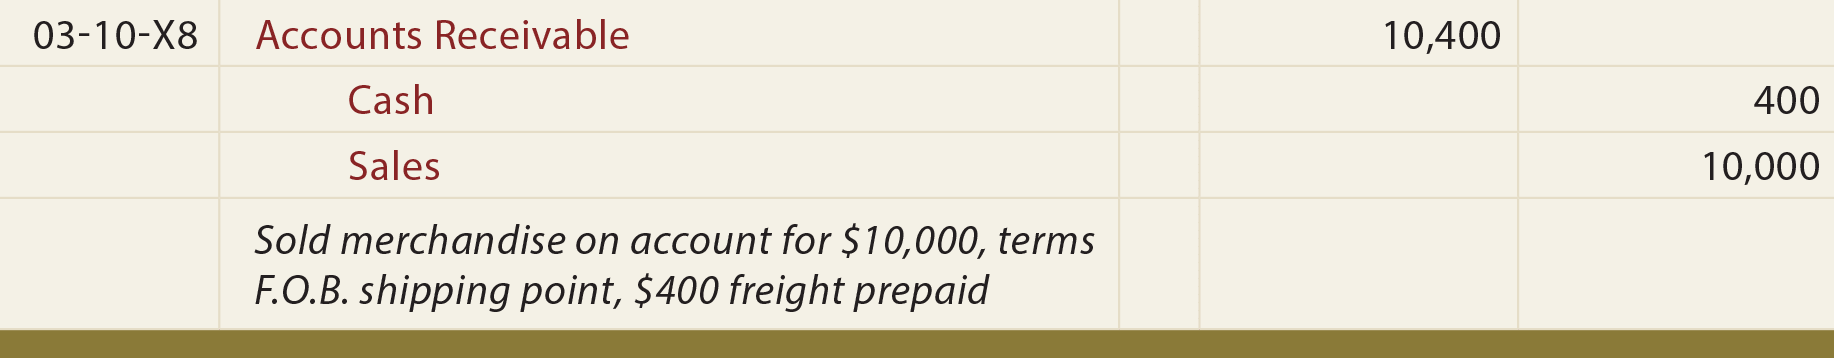 F.O.B. Shipping Point, Freight Prepaid Buyers General Journal Entry